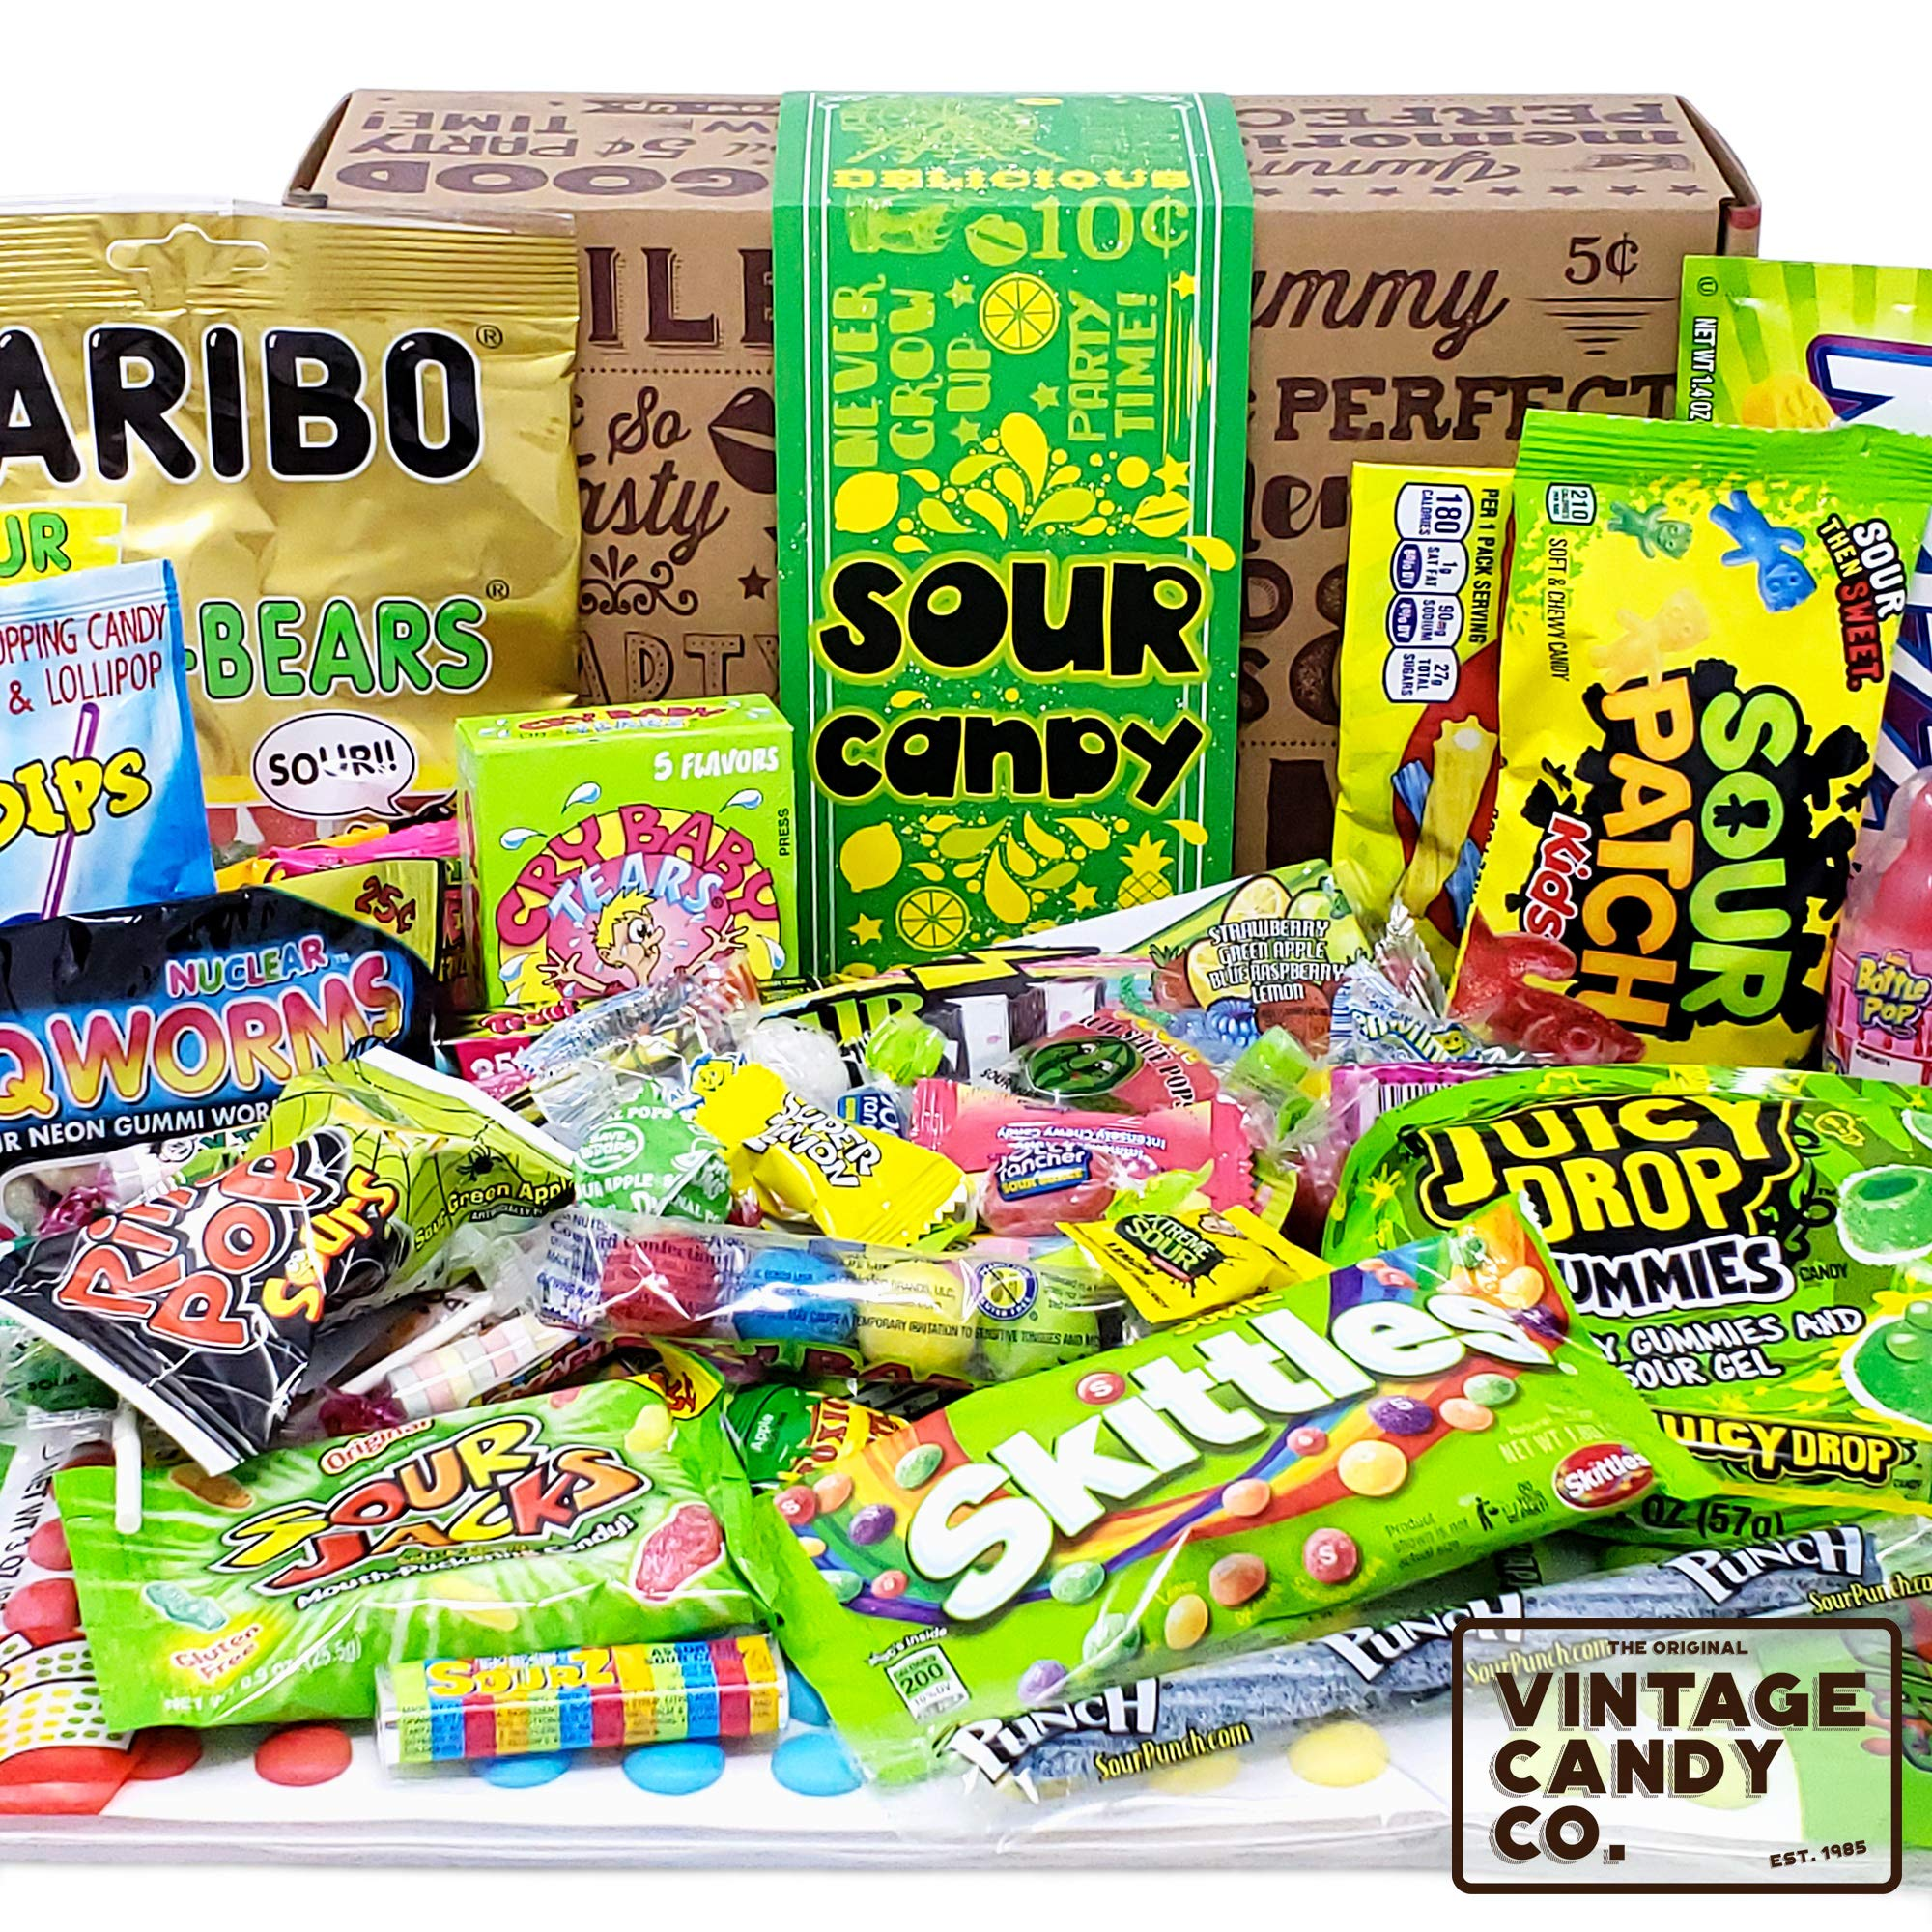 VINTAGE CANDY CO. SOUR CANDY ASSORTMENT GIFT BOX - Best Candy Variety Mix Care Package - Unique & Fun Gag Gift Basket - PERFECT For Man Or Woman Who LOVES SOUR Candy by Vintage Candy Co.